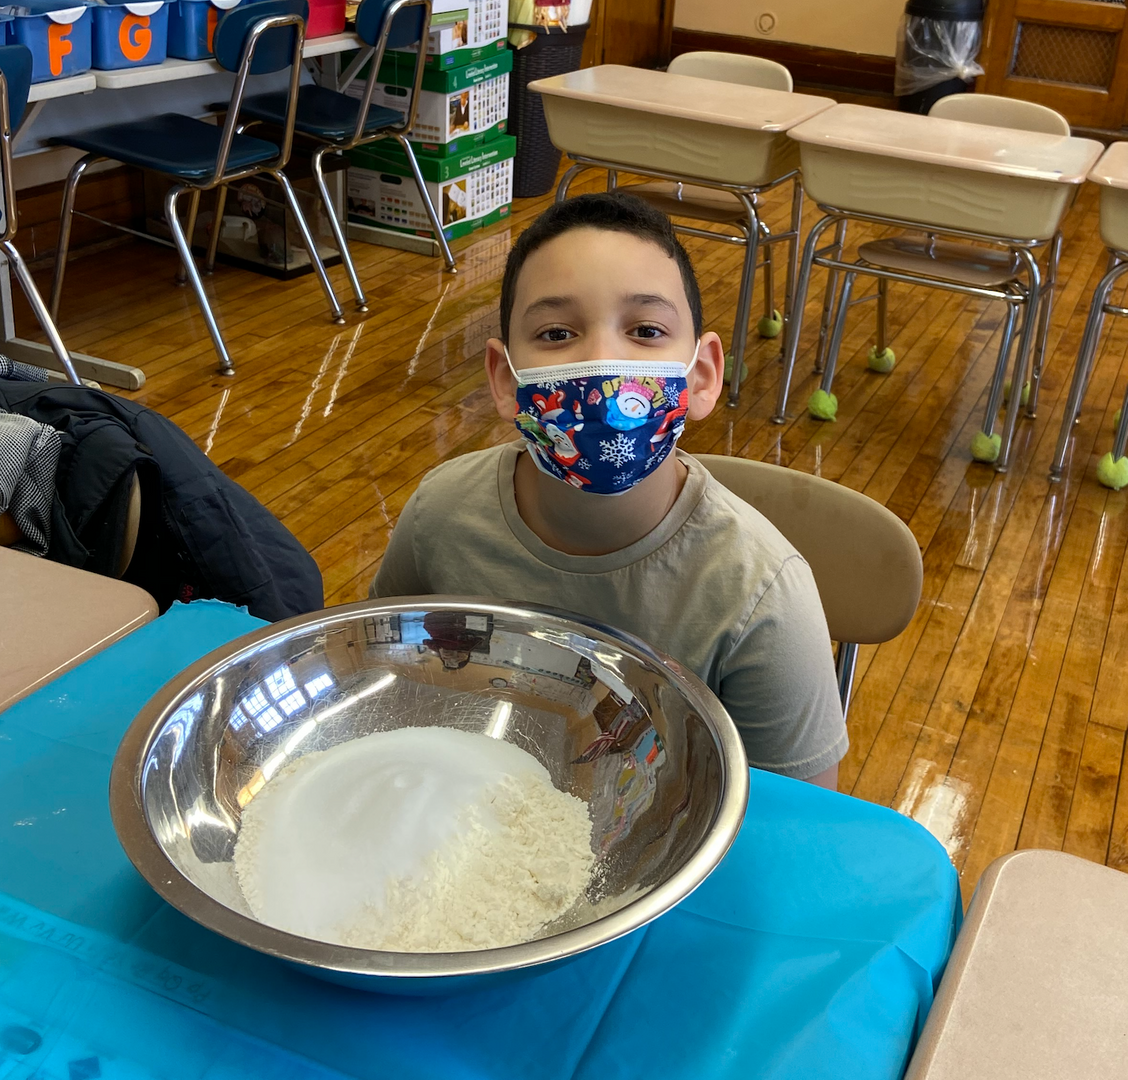 Ms. Scopo's student with a bowl for a science experiment